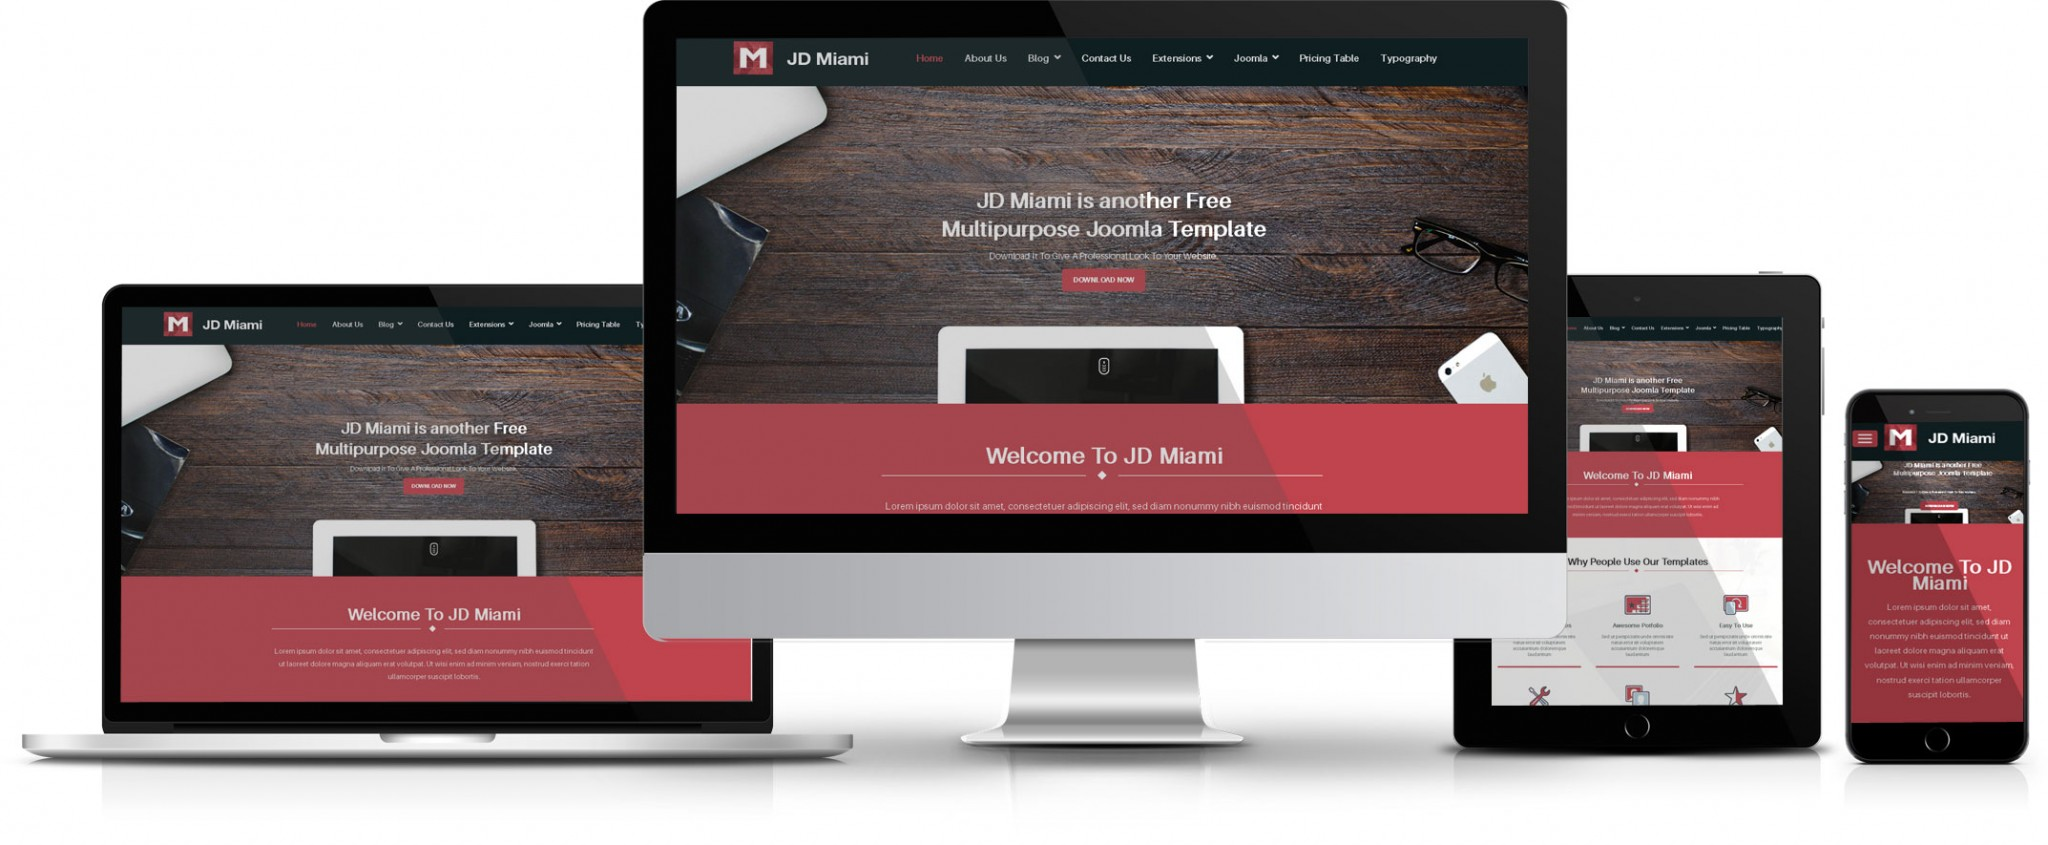 JD Miami Free Joomla Template